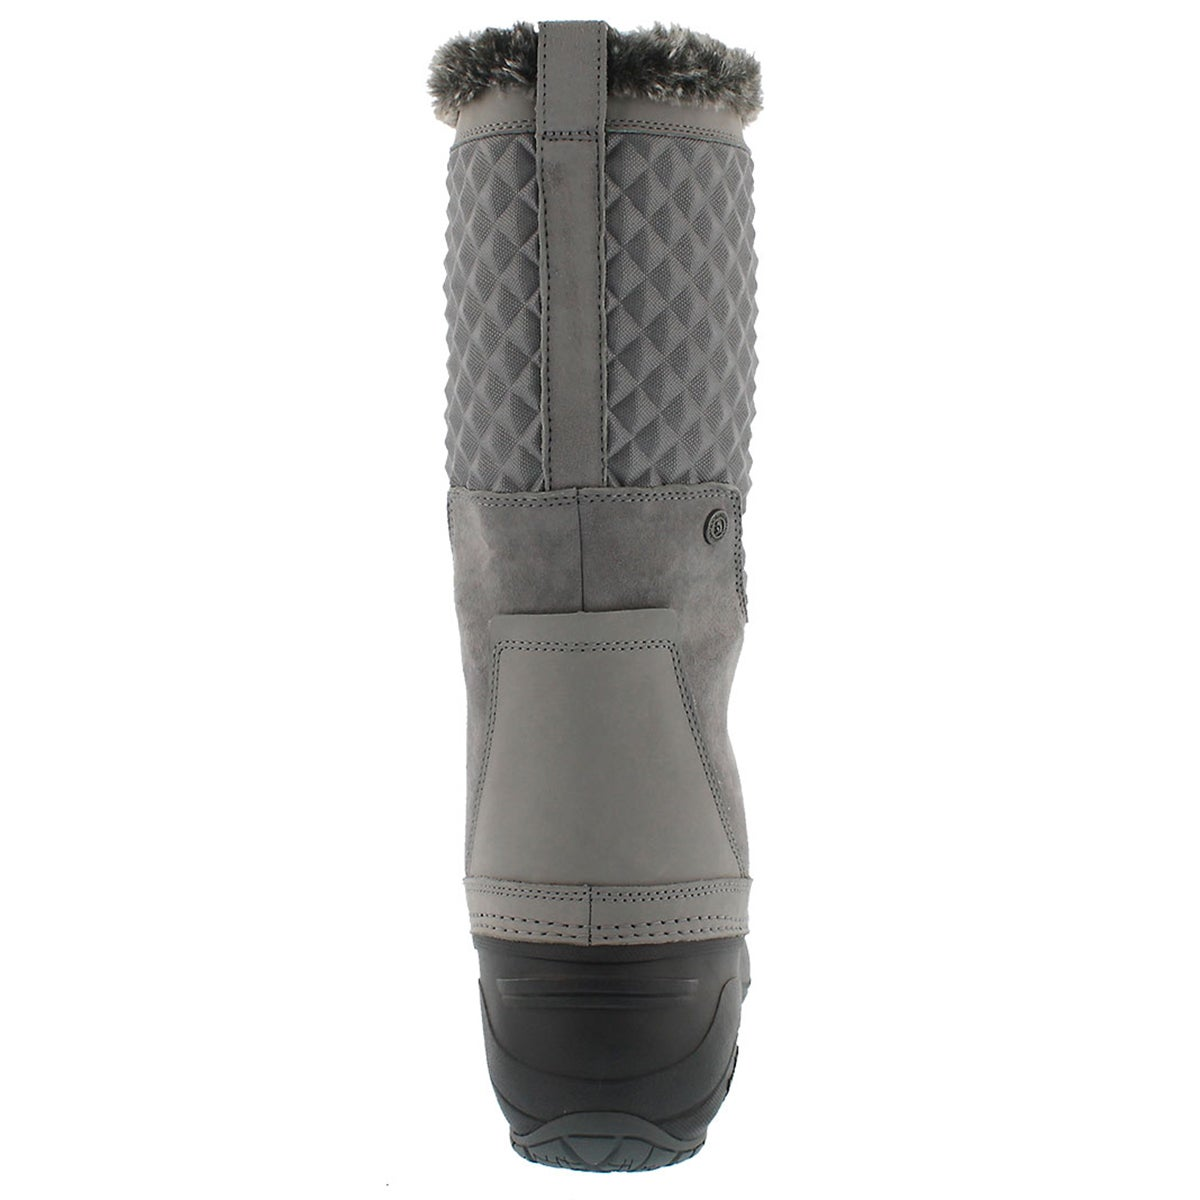 Lds Shellista III Tall grey wntr boot